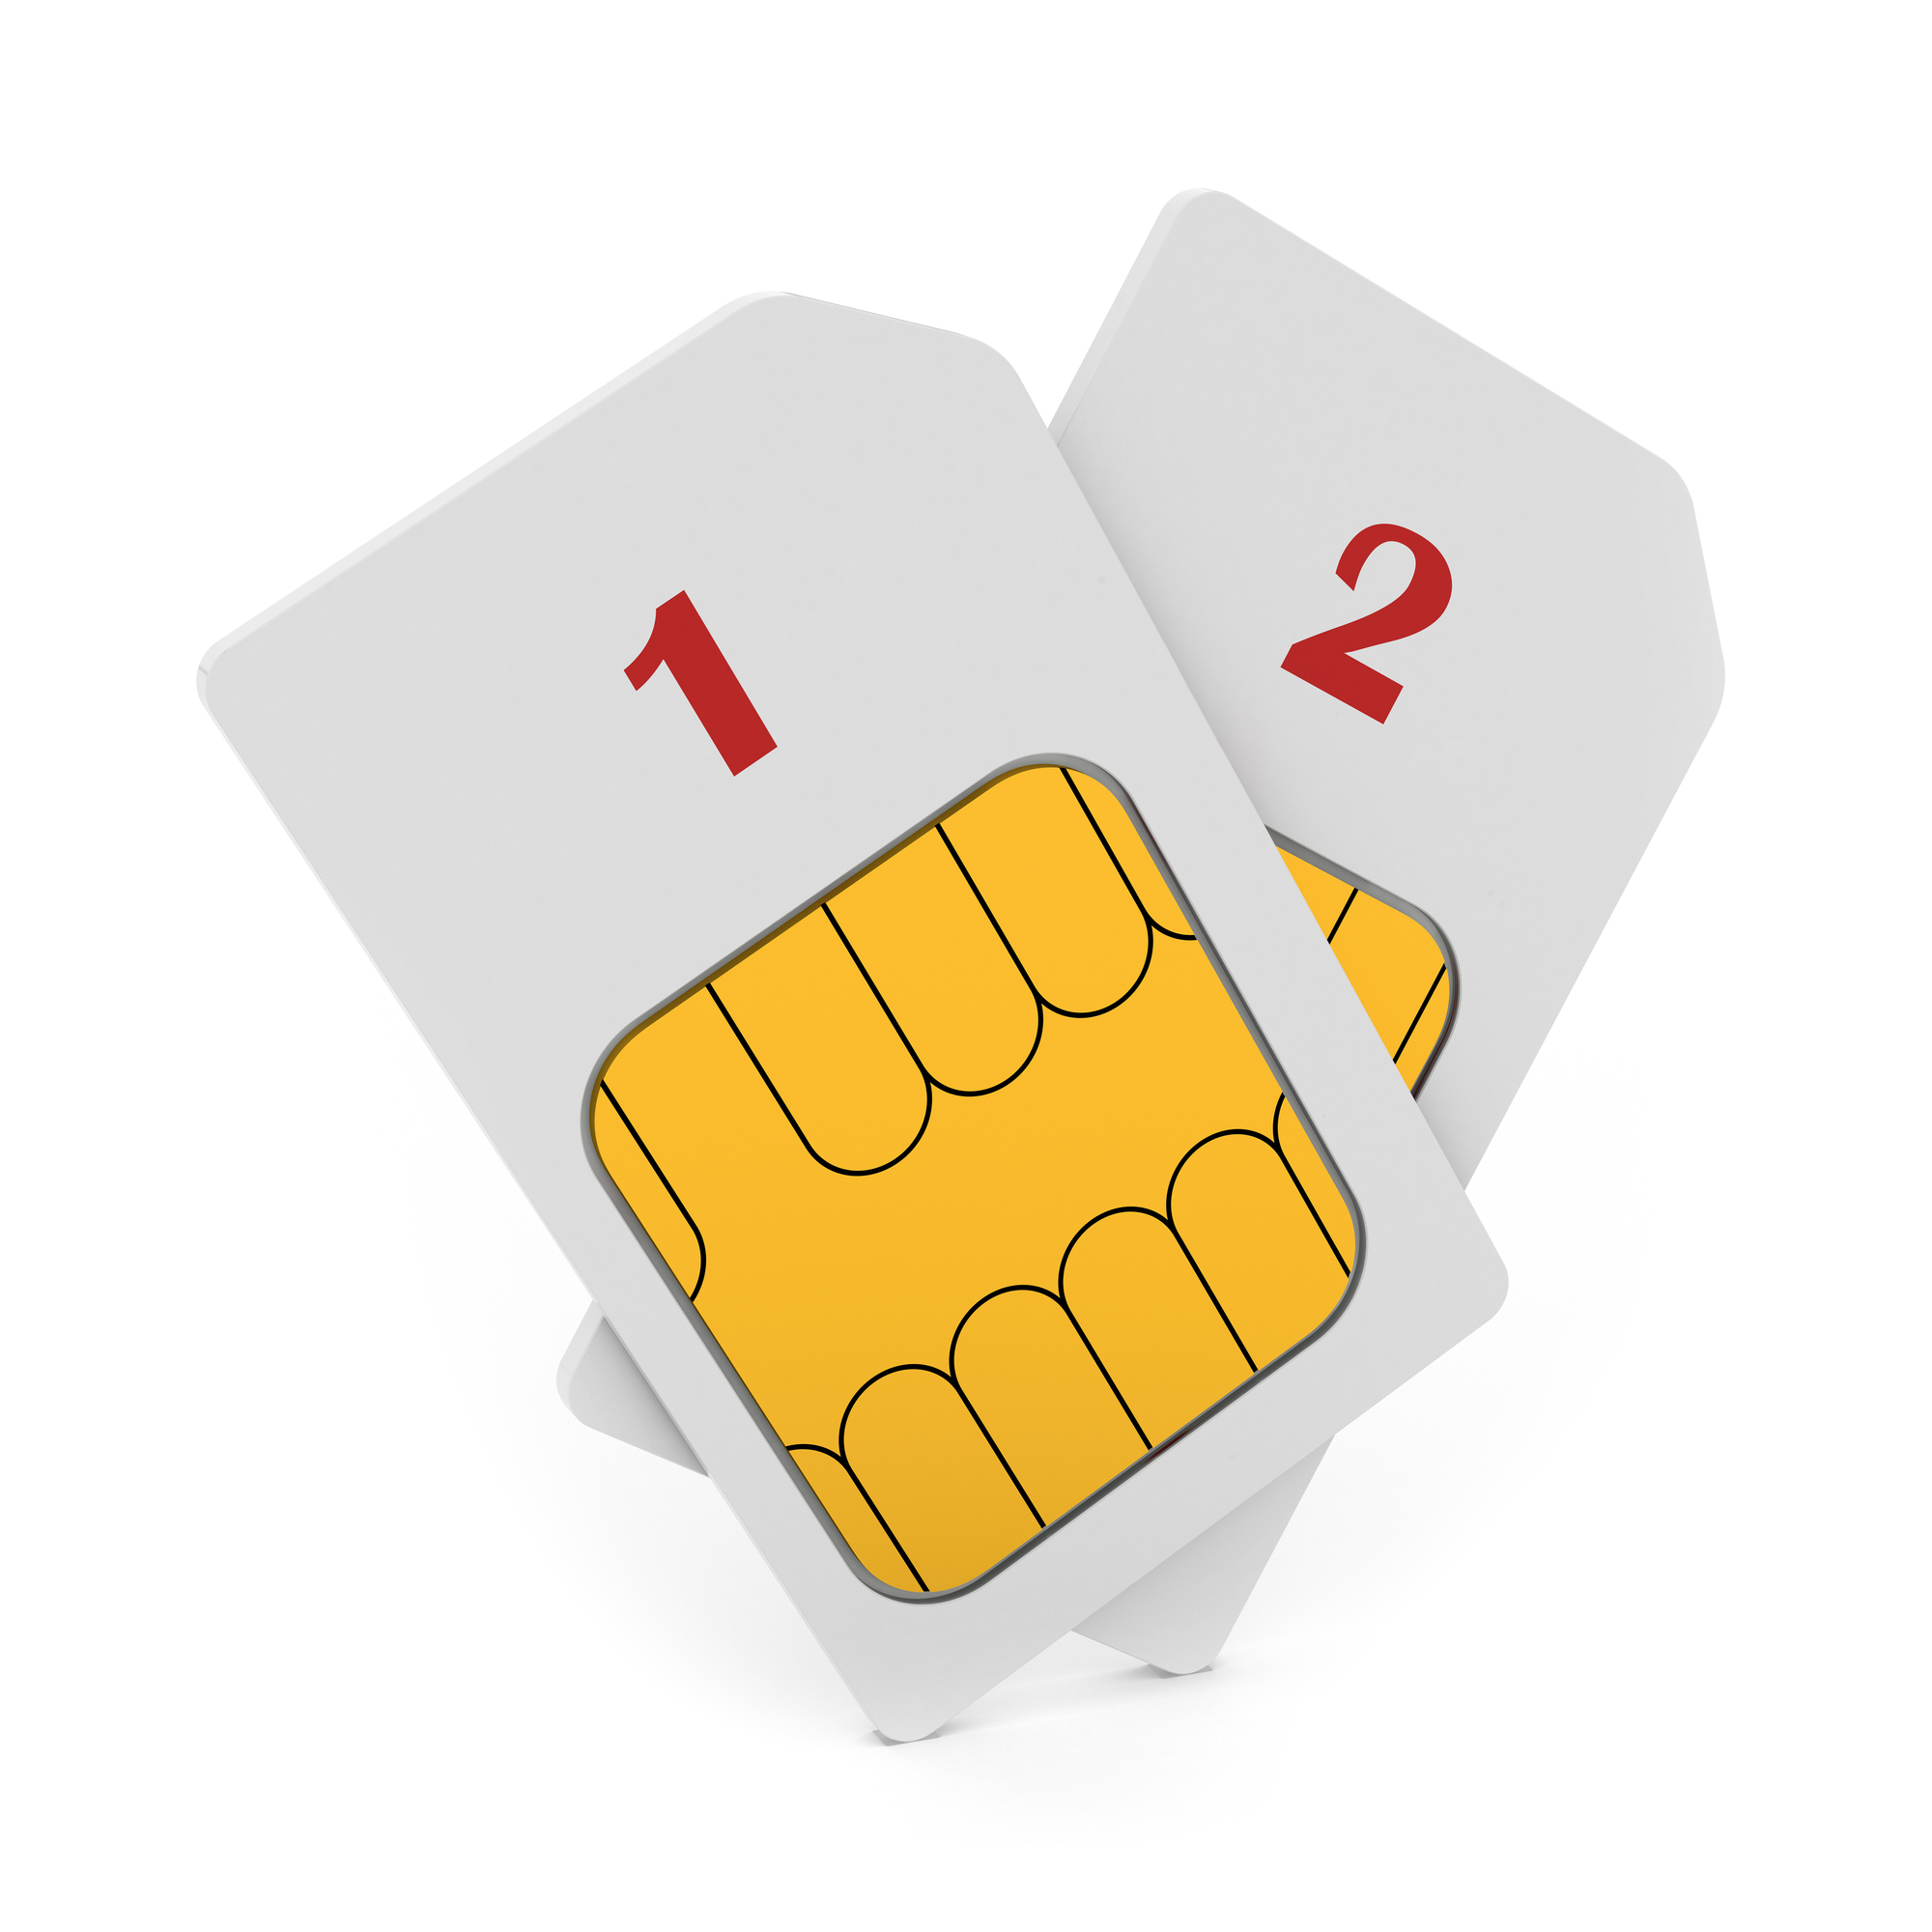 3d illustration of double phone SIM cards isolated